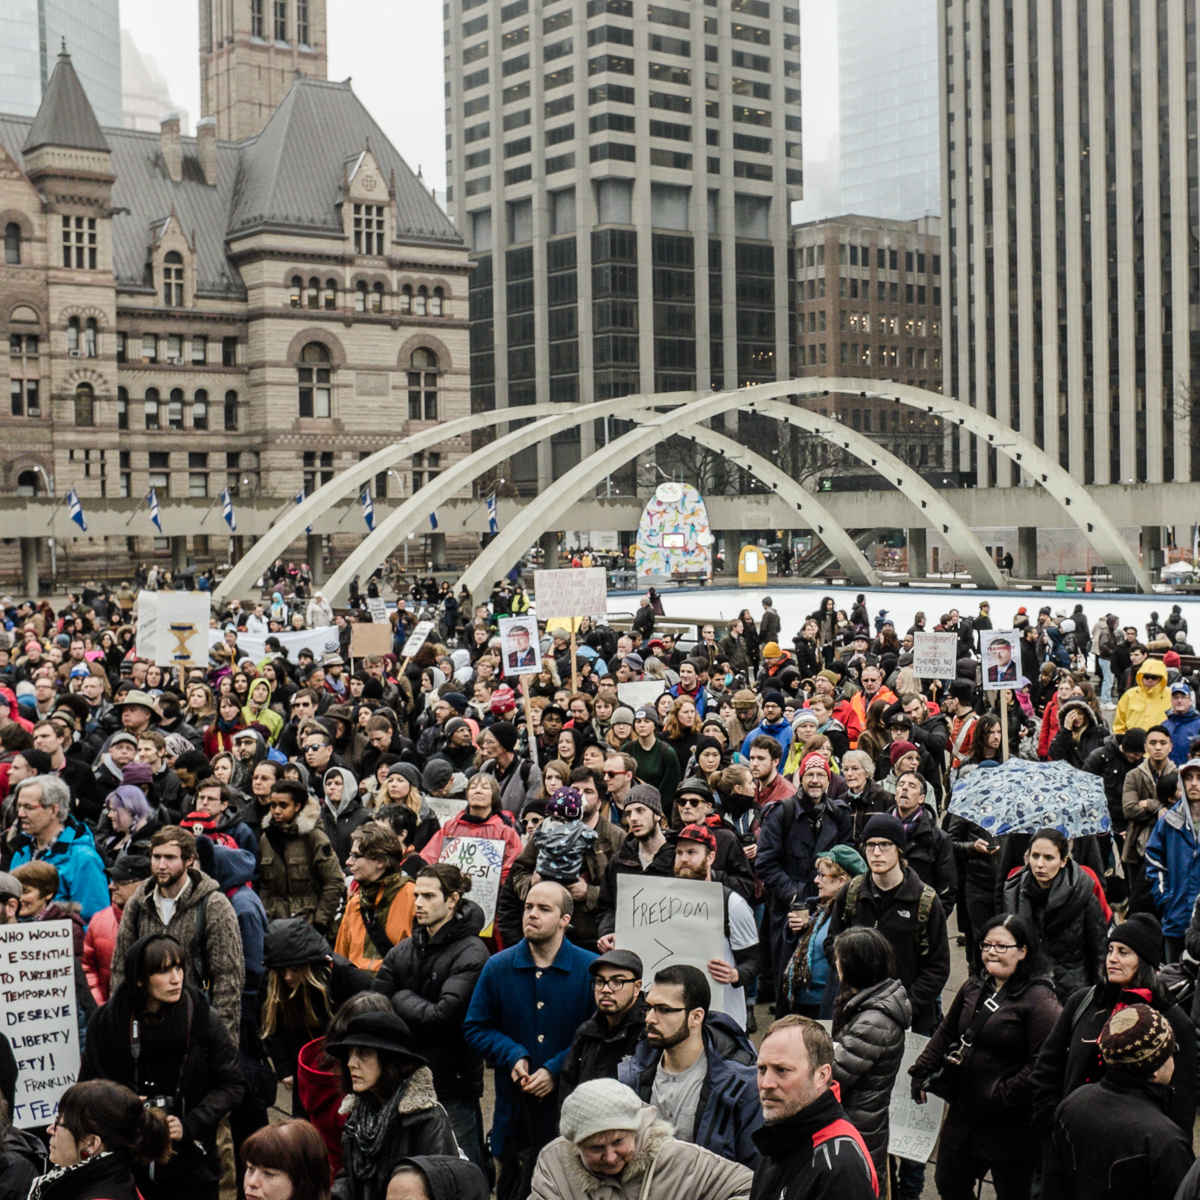 Nathan Phillips Square, Toronto. (Photo: Connie Tsang)